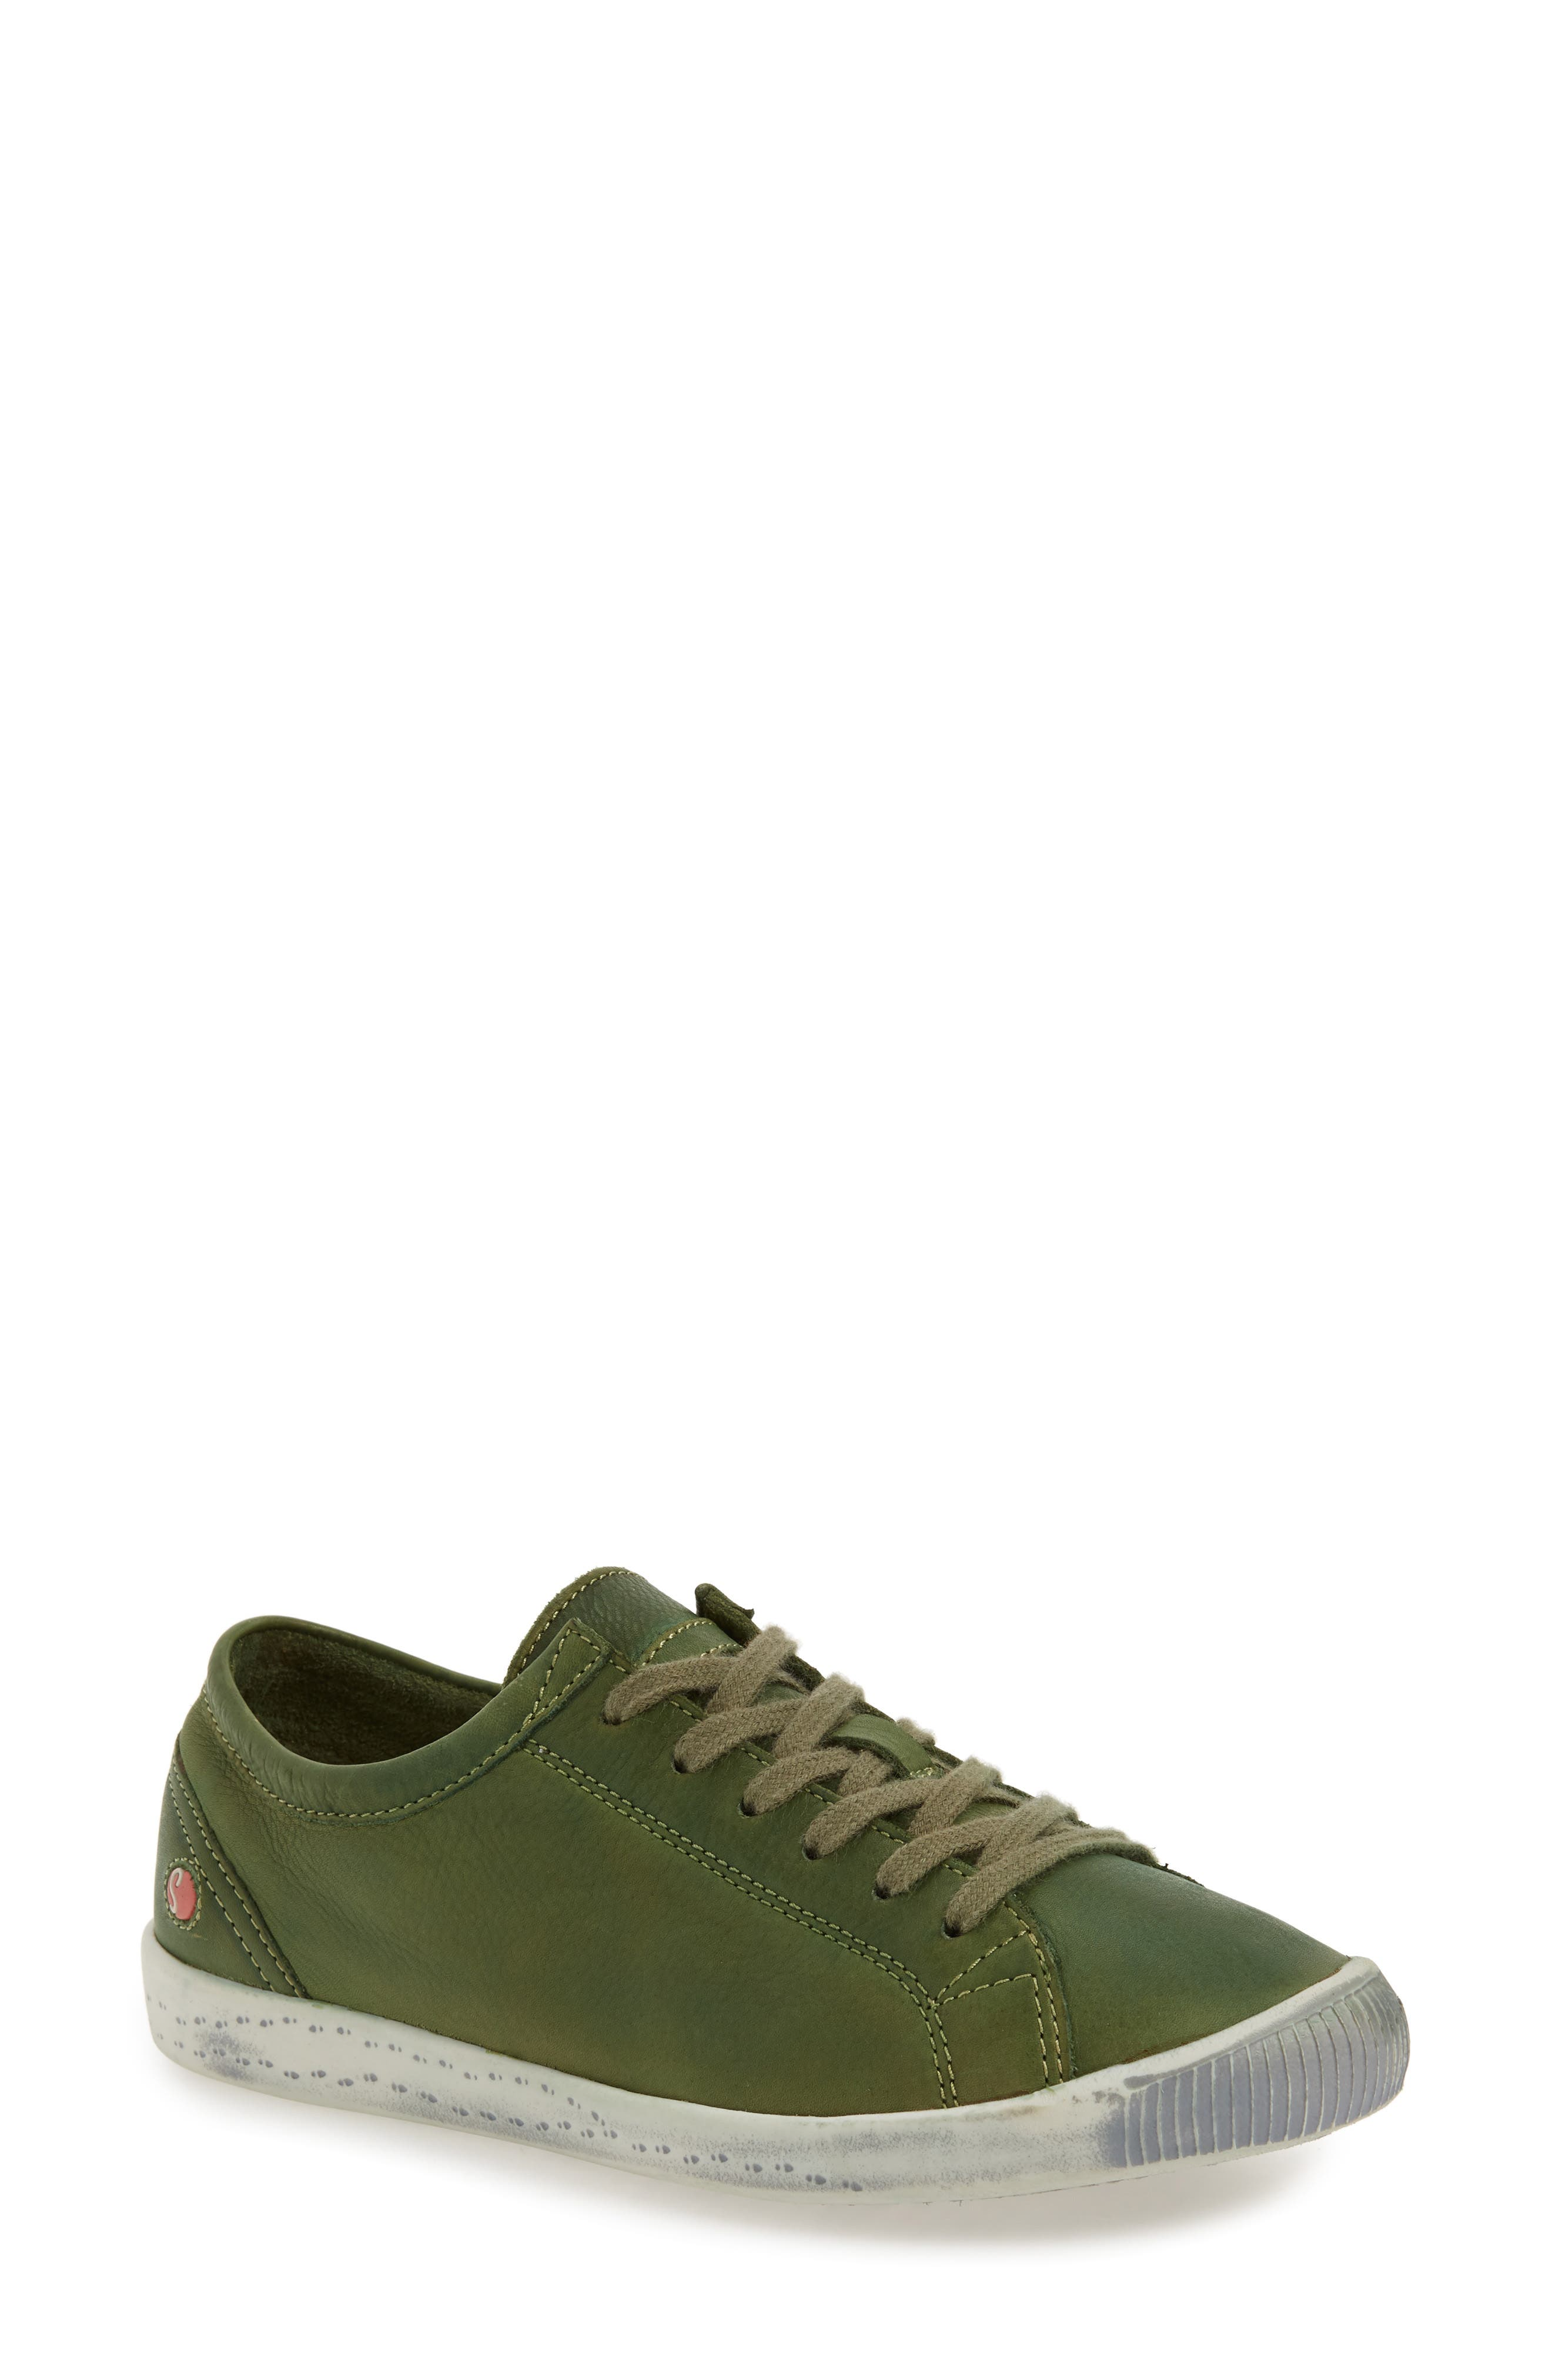 Isla Distressed Sneaker,                         Main,                         color, FOREST GREEN WASHED LEATHER